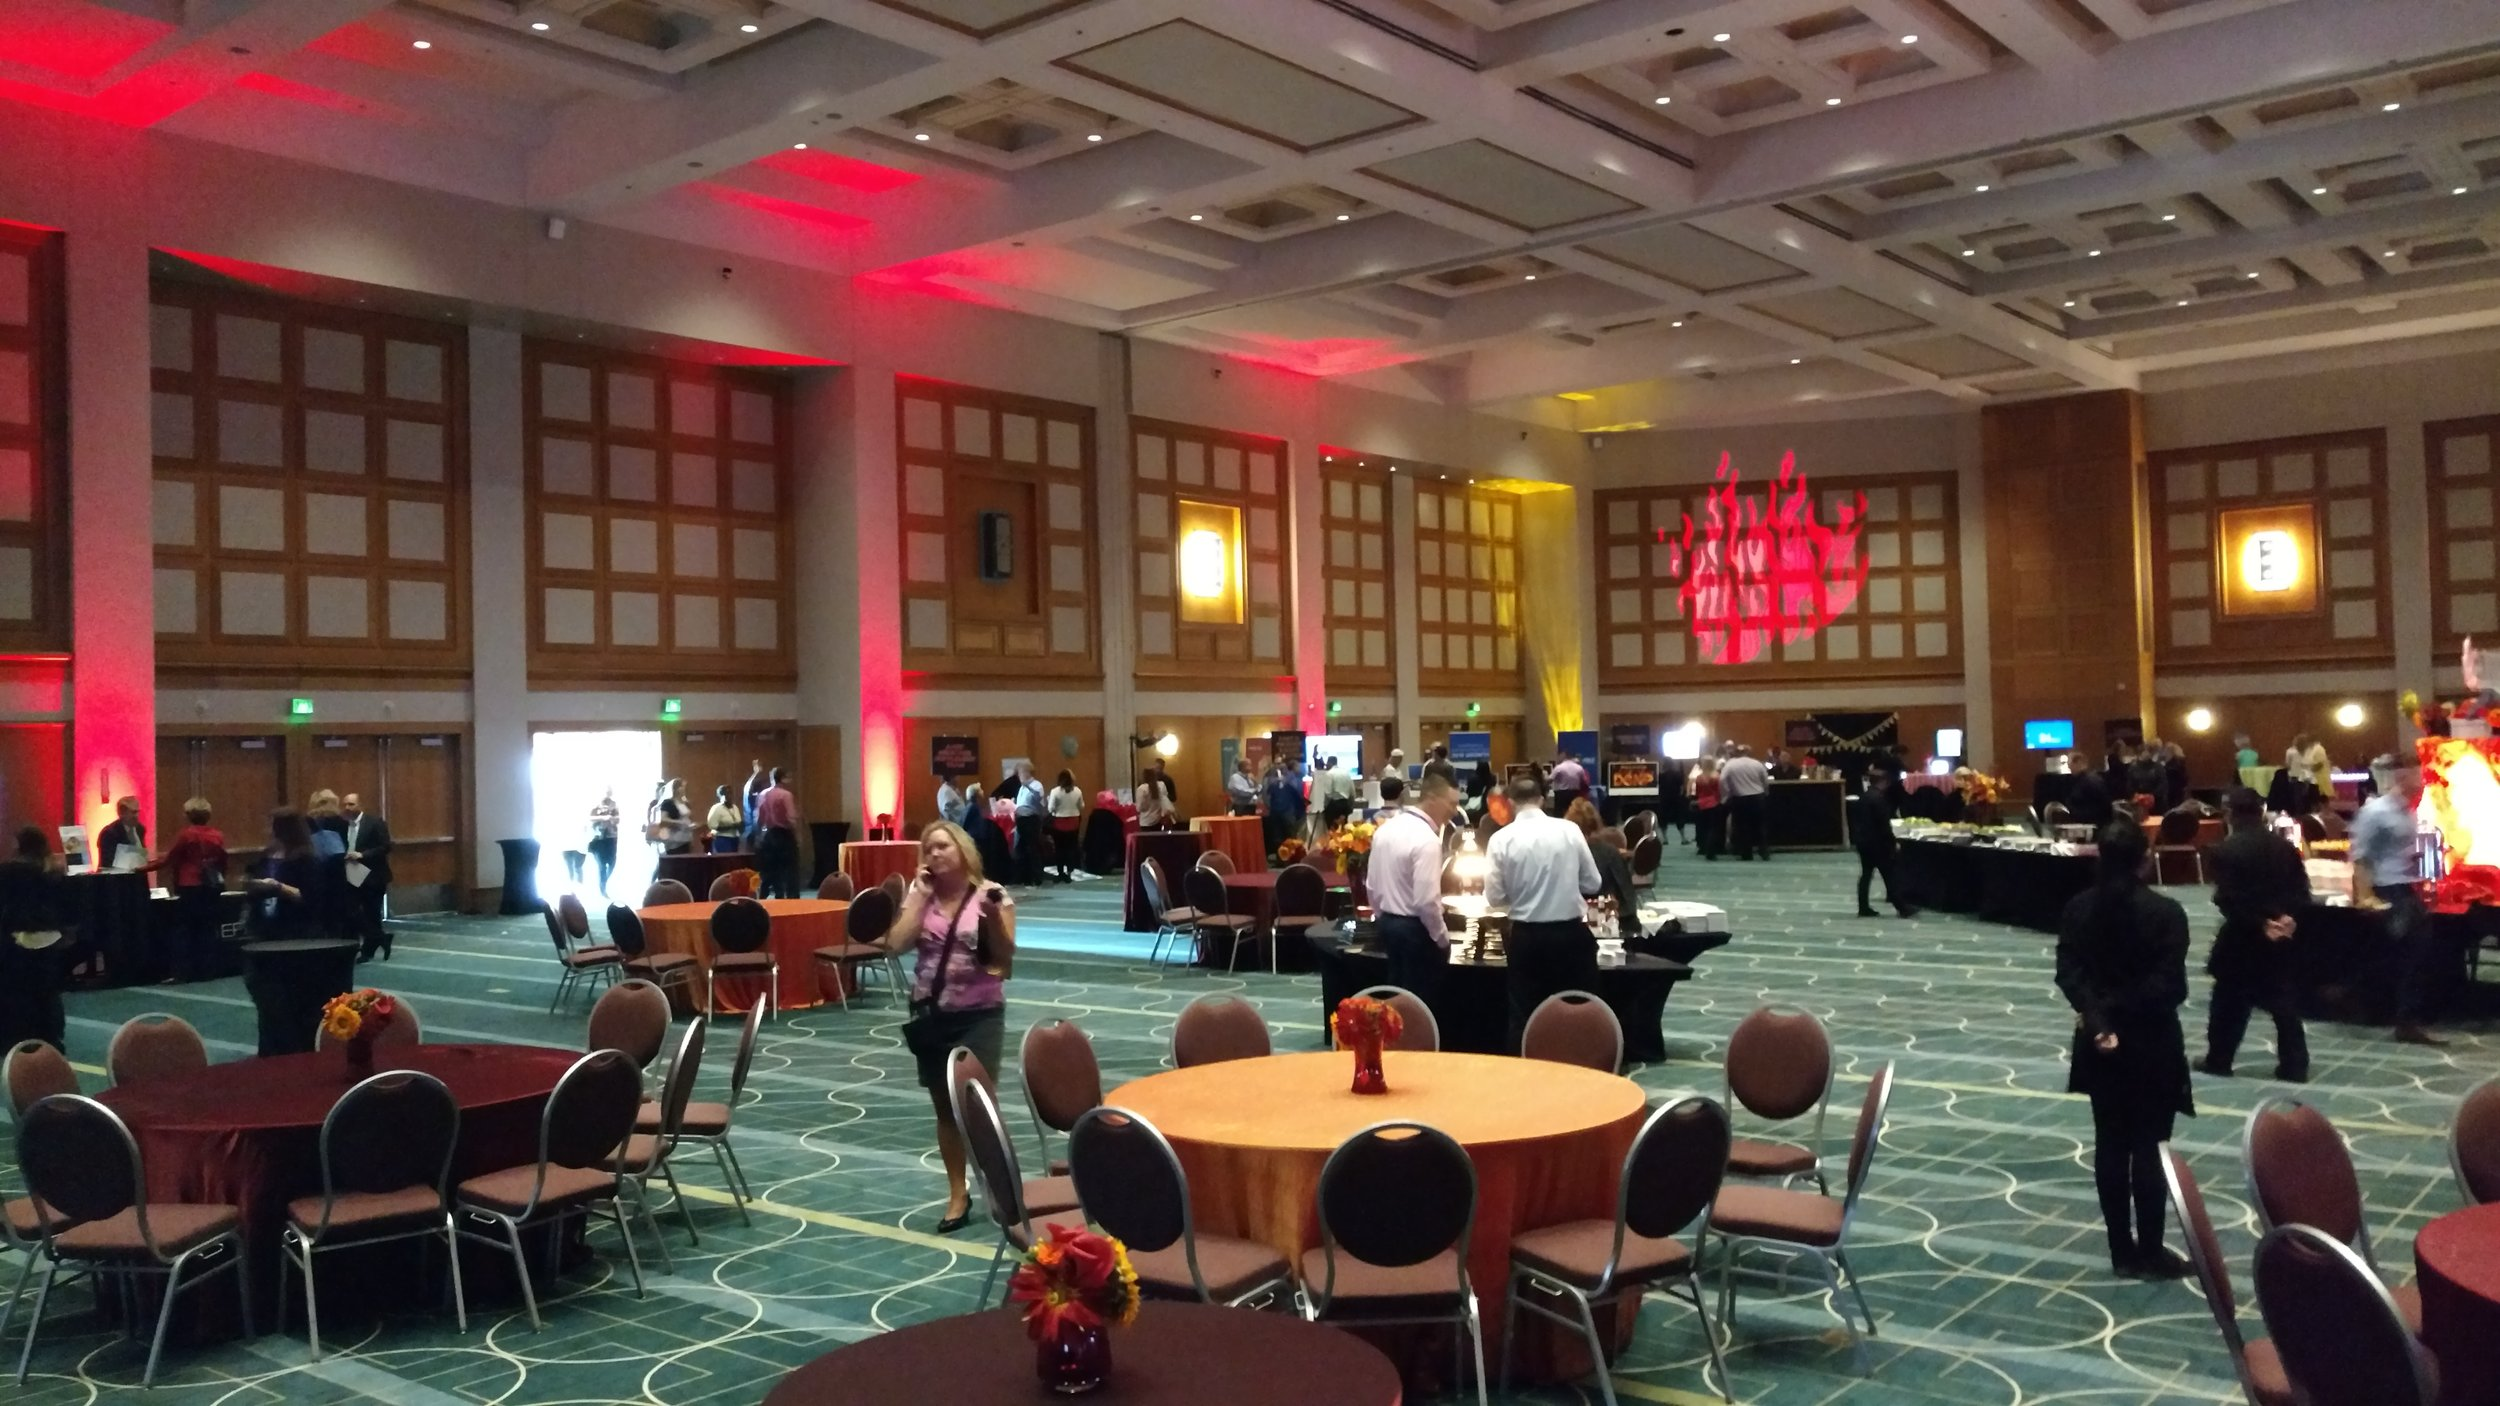 Picture of AV for You TV and Lighting rental equipment at the Mpls Convention Center